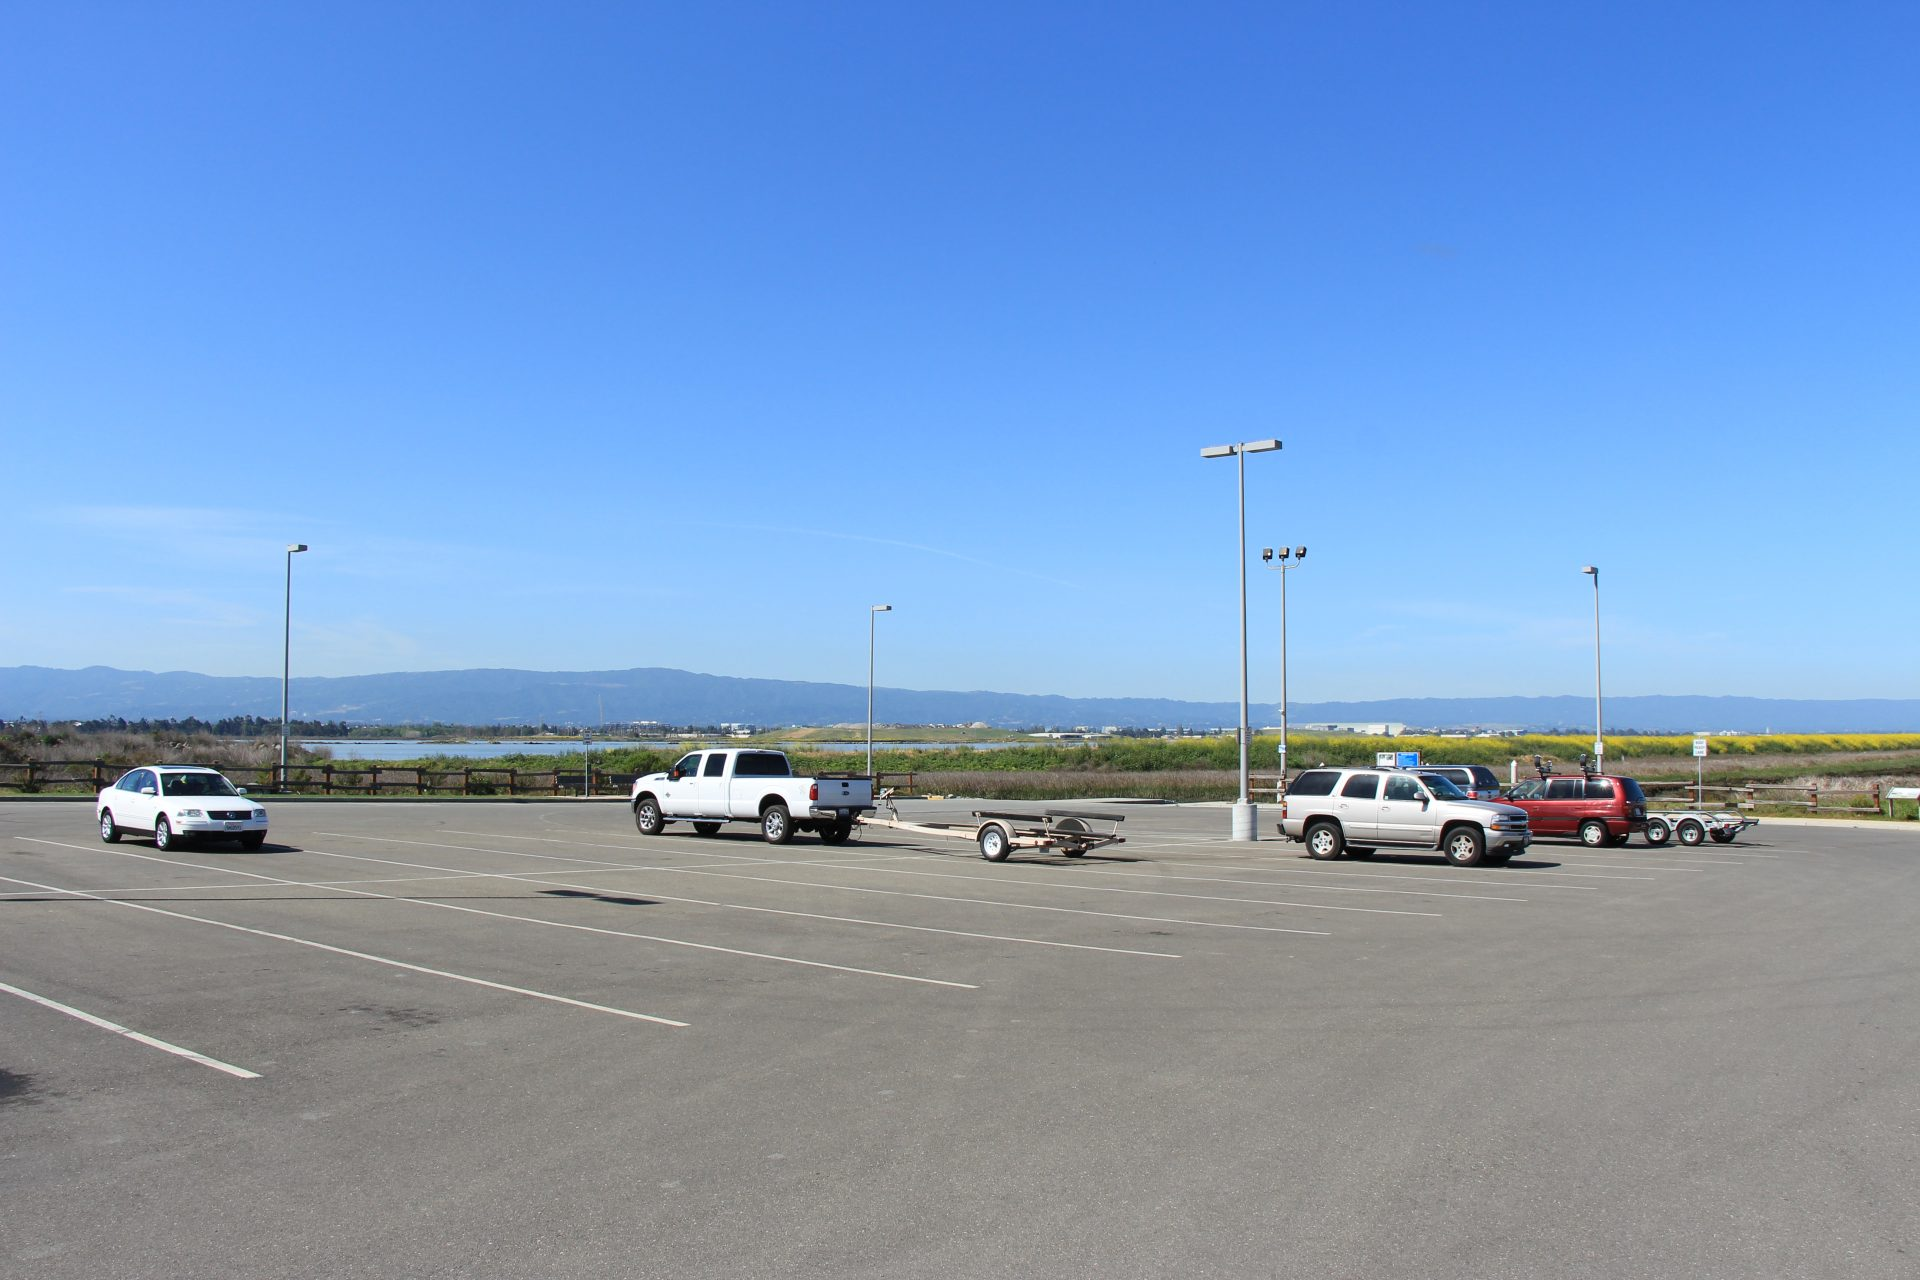 large mostly empty parking lot with long spaces for trucks and boat trailers